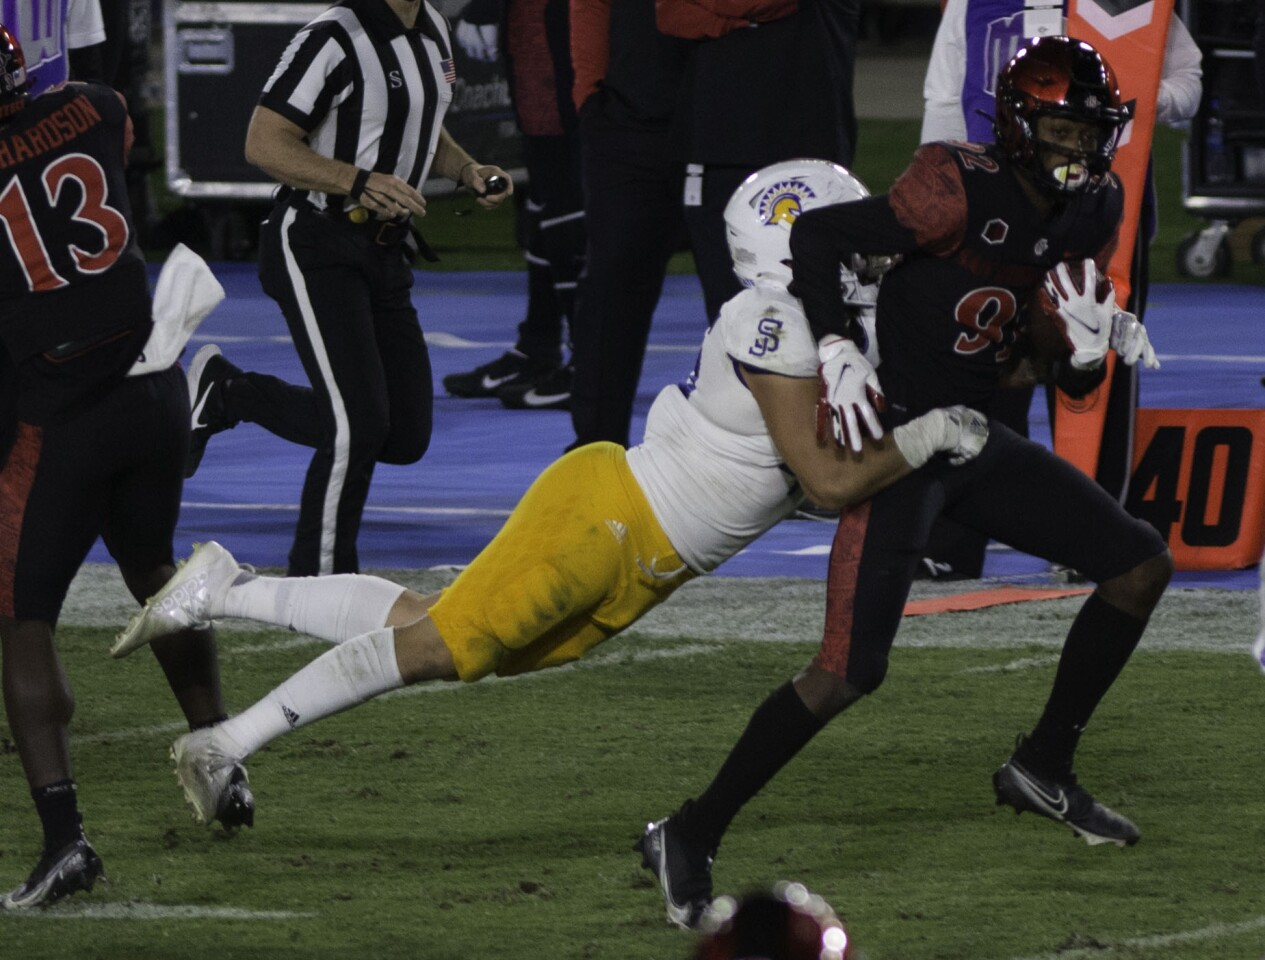 San Diego State's Kobe Smith is tackled by San Jose State's Kyle Harmon.